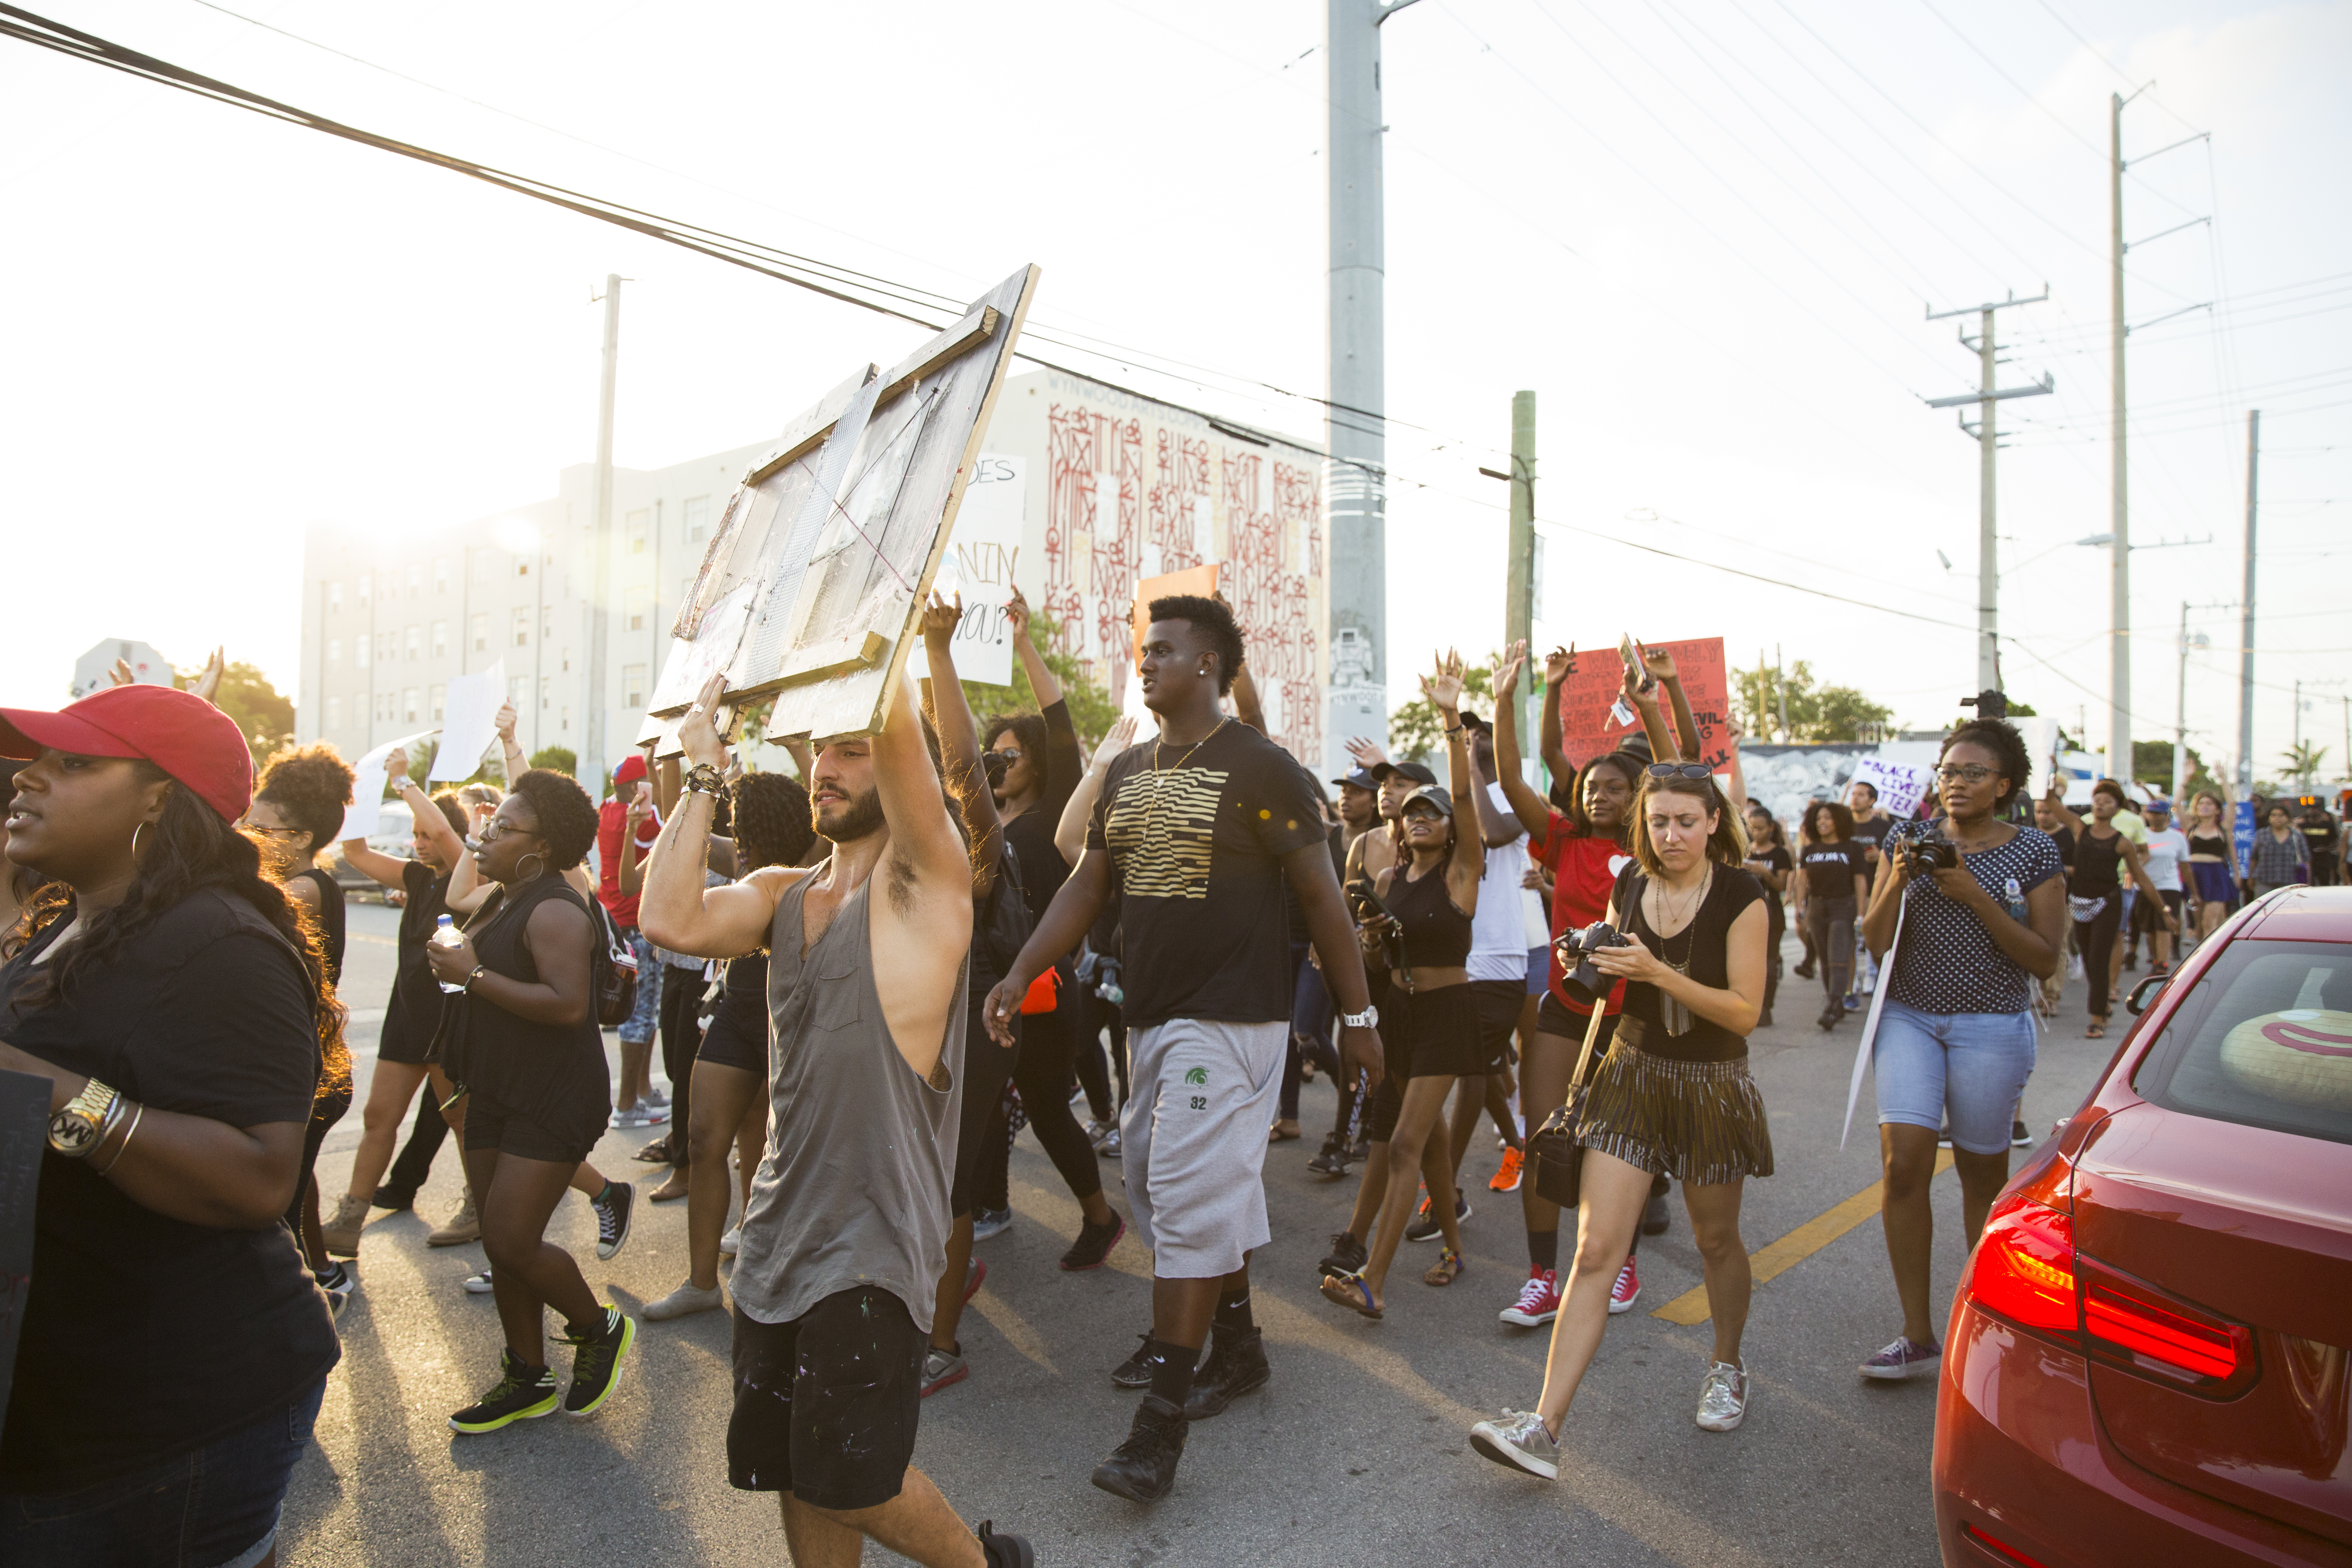 Protesters at a Black Lives Matter event in Miami.